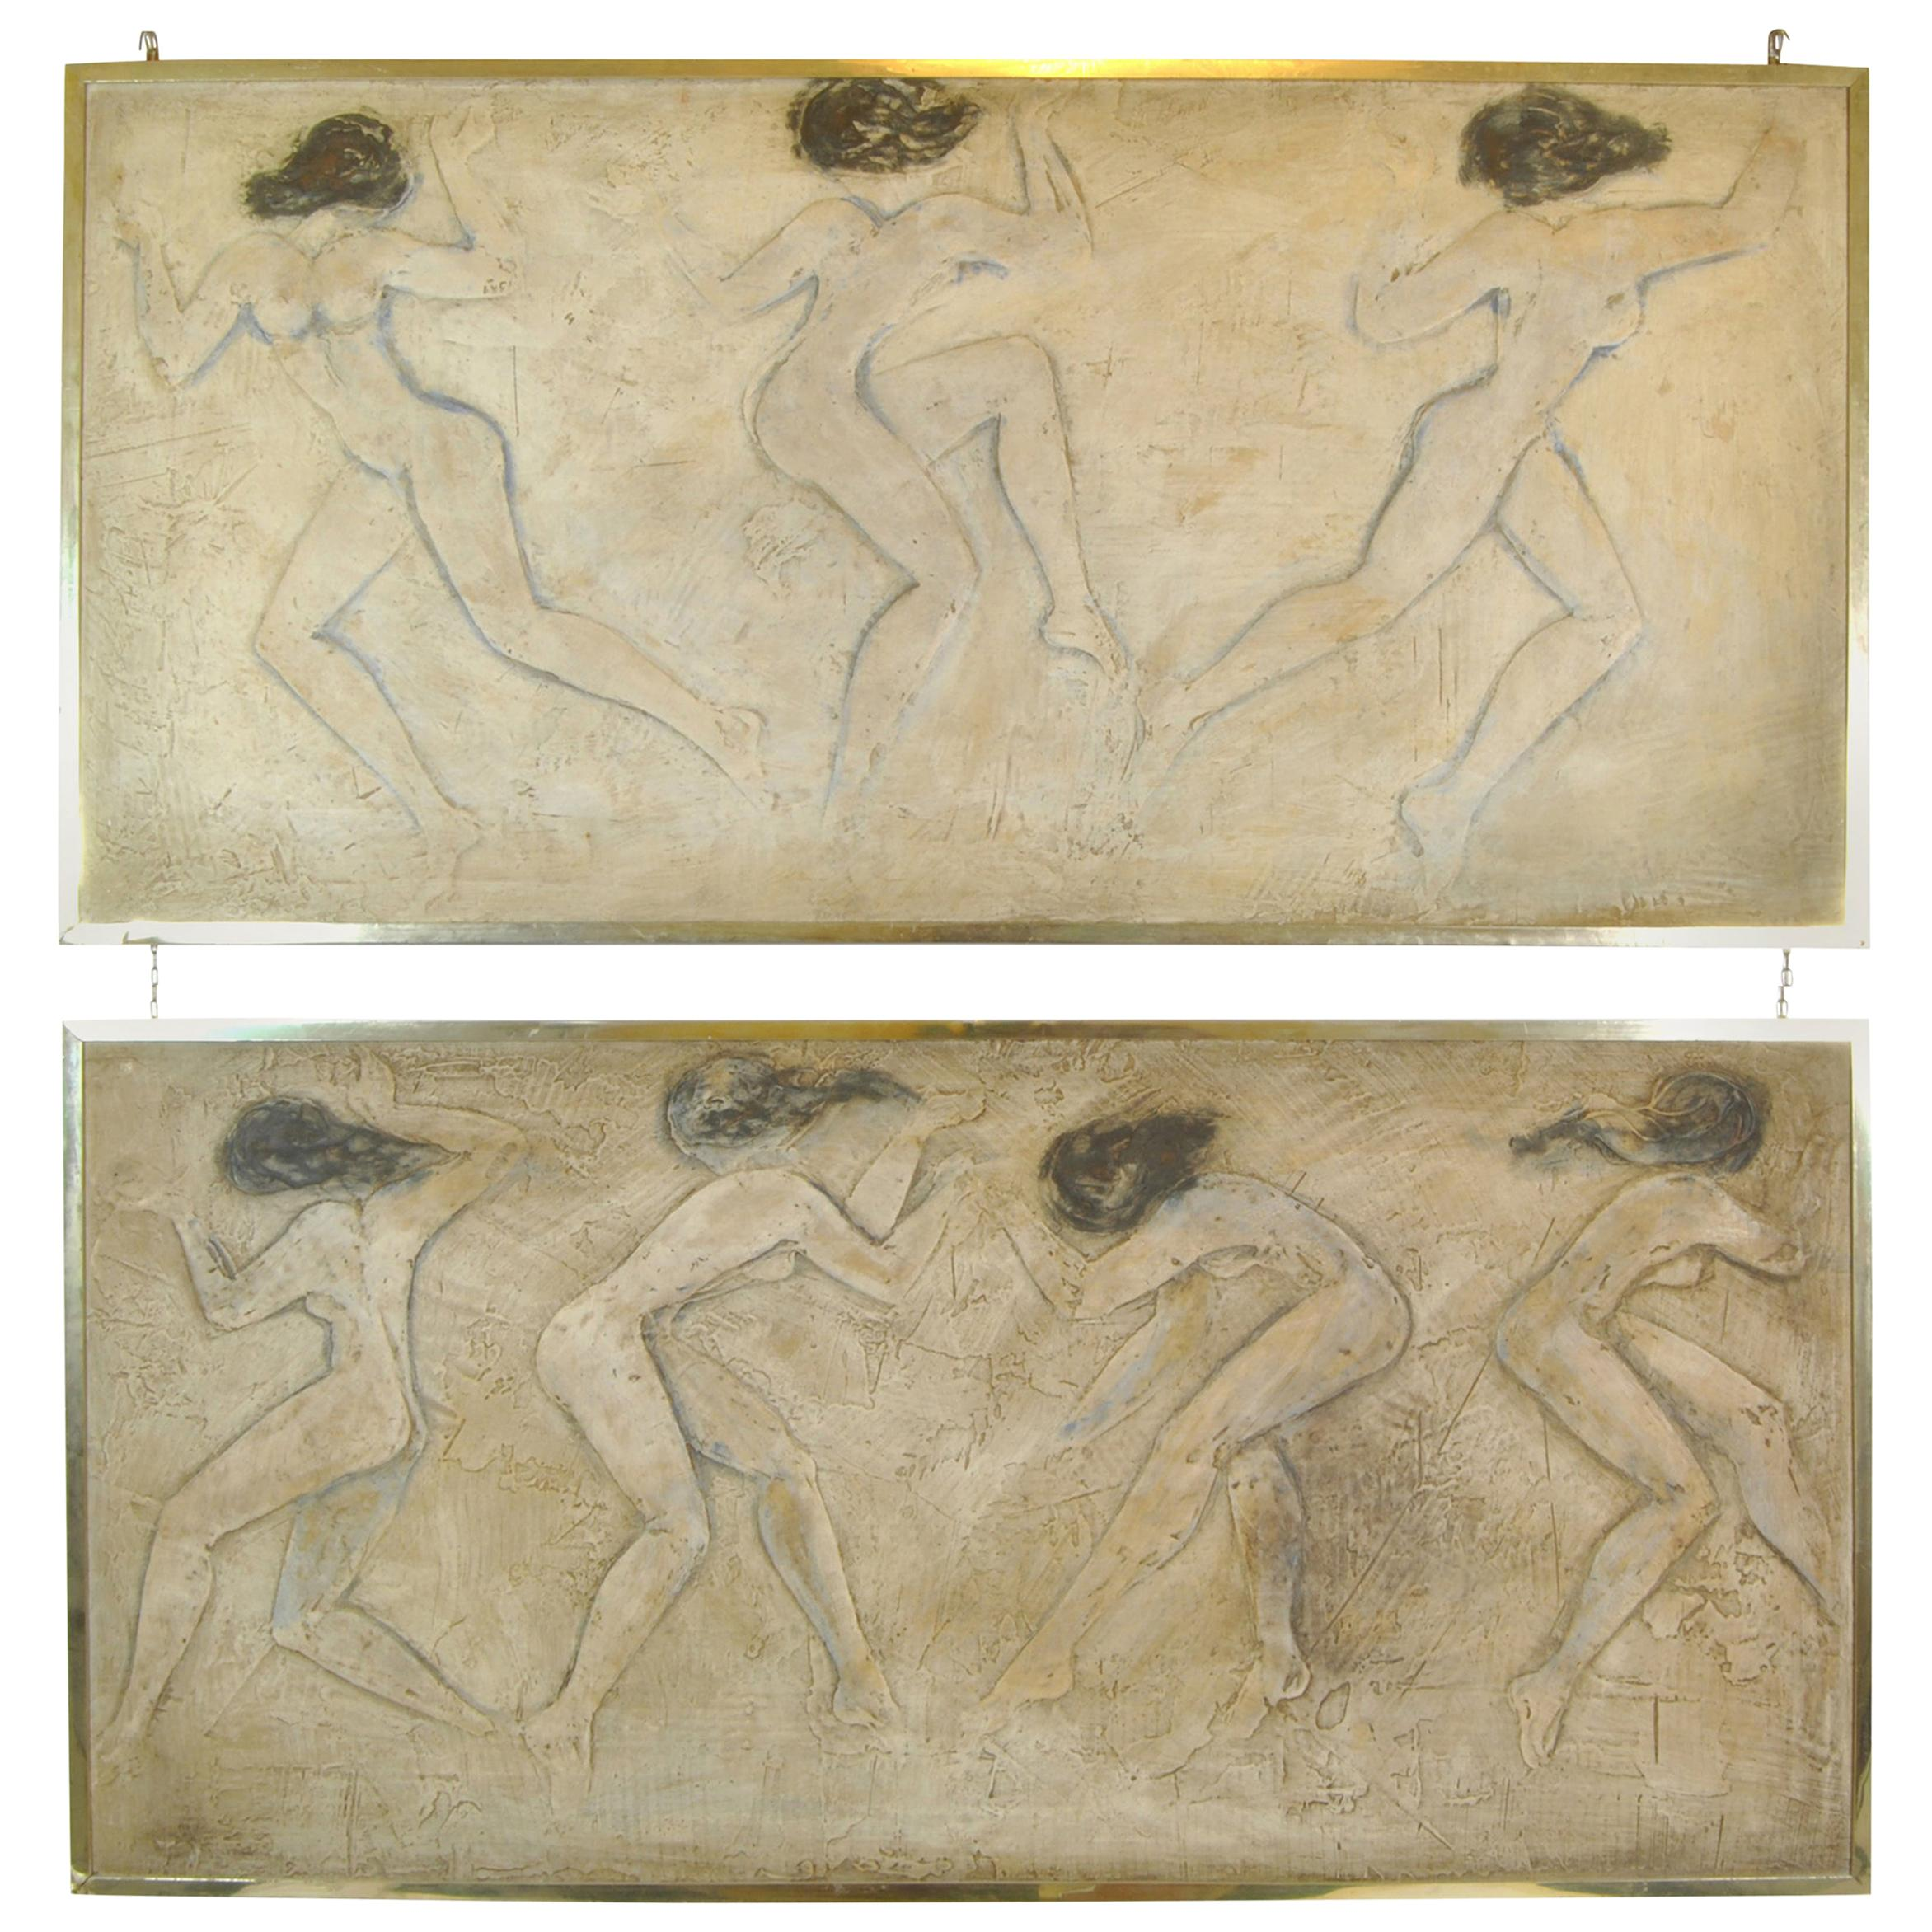 Pair of Bas-Reliefs in Scagliola with Figures of Women, England, 1940